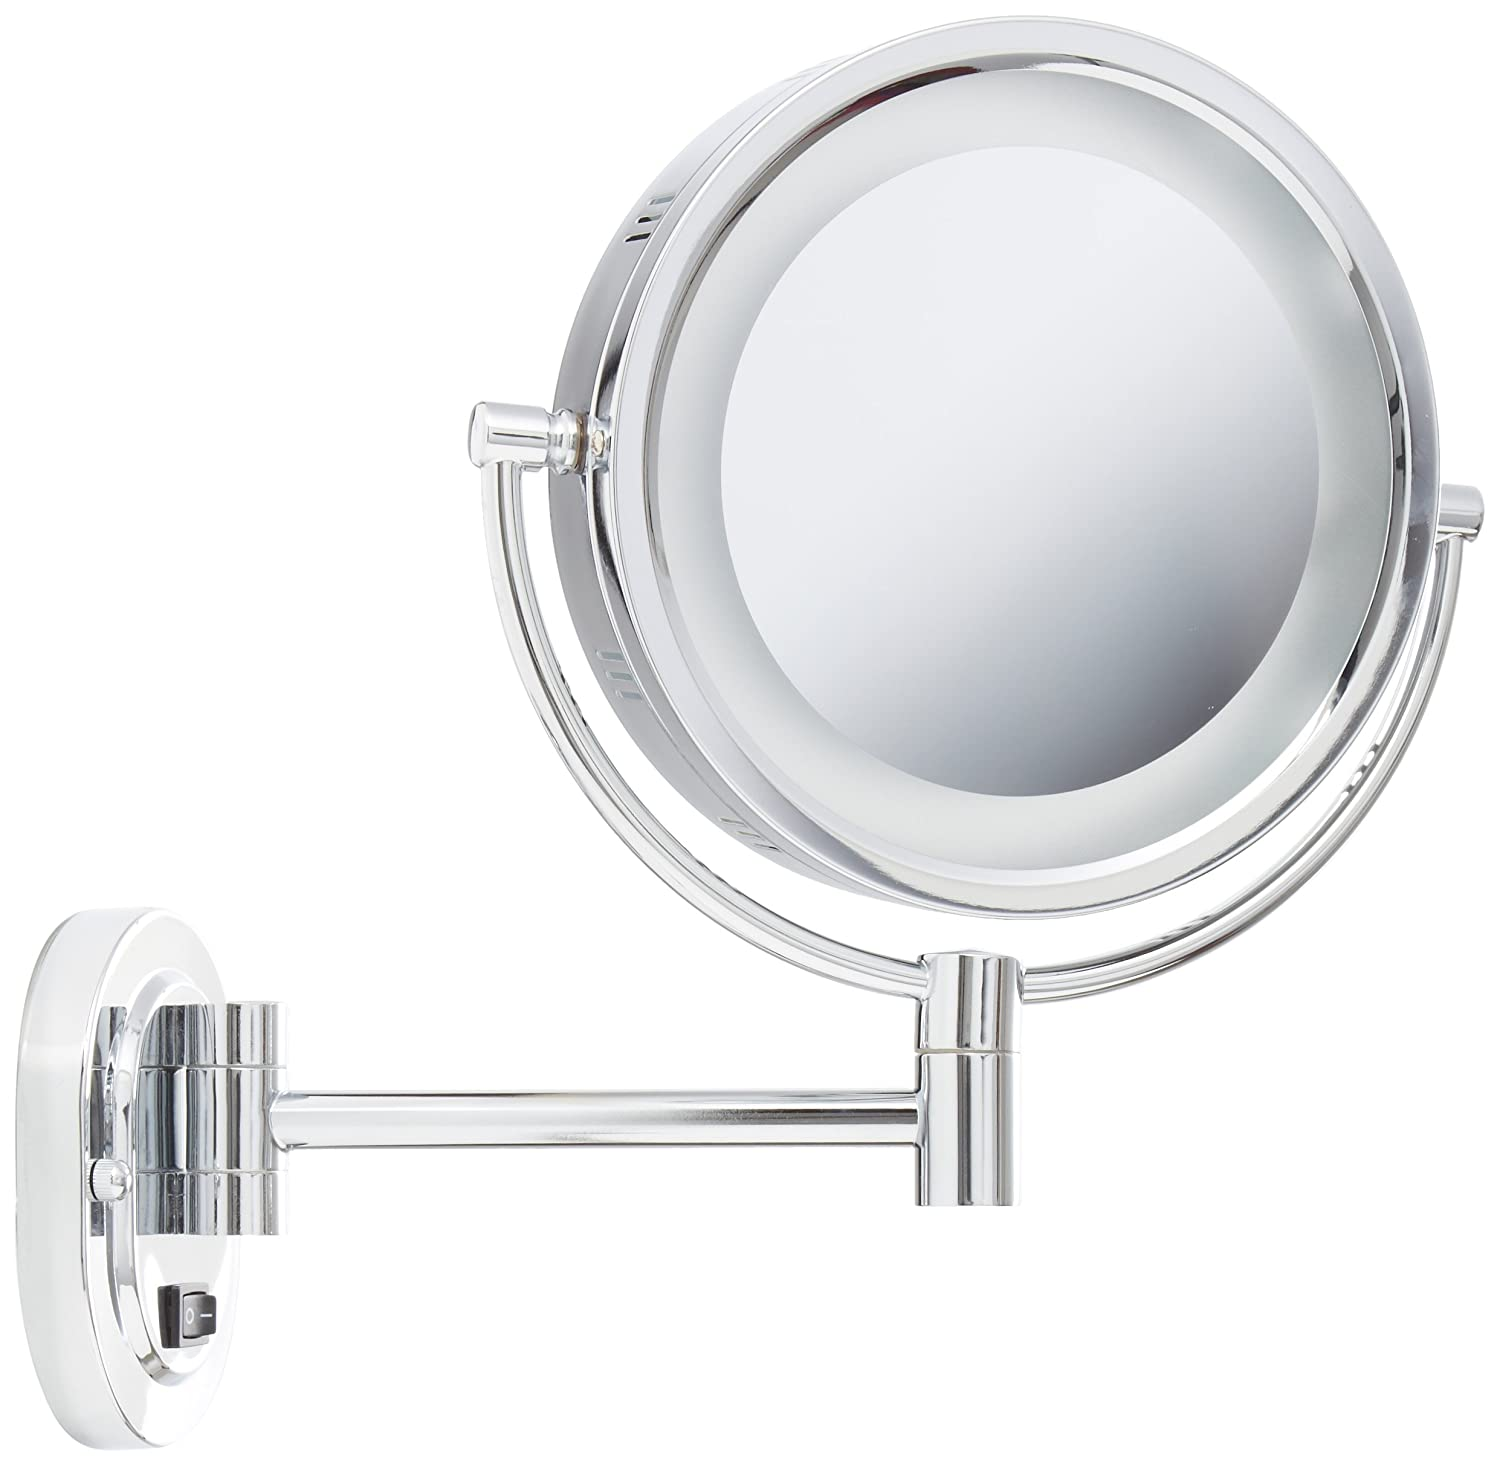 B002HRENWA Jerdon HL165CD 8-Inch Lighted Wall Mount Direct Wire Makeup Mirror with 5x Magnification, Chrome Finish 81oModDrnaL